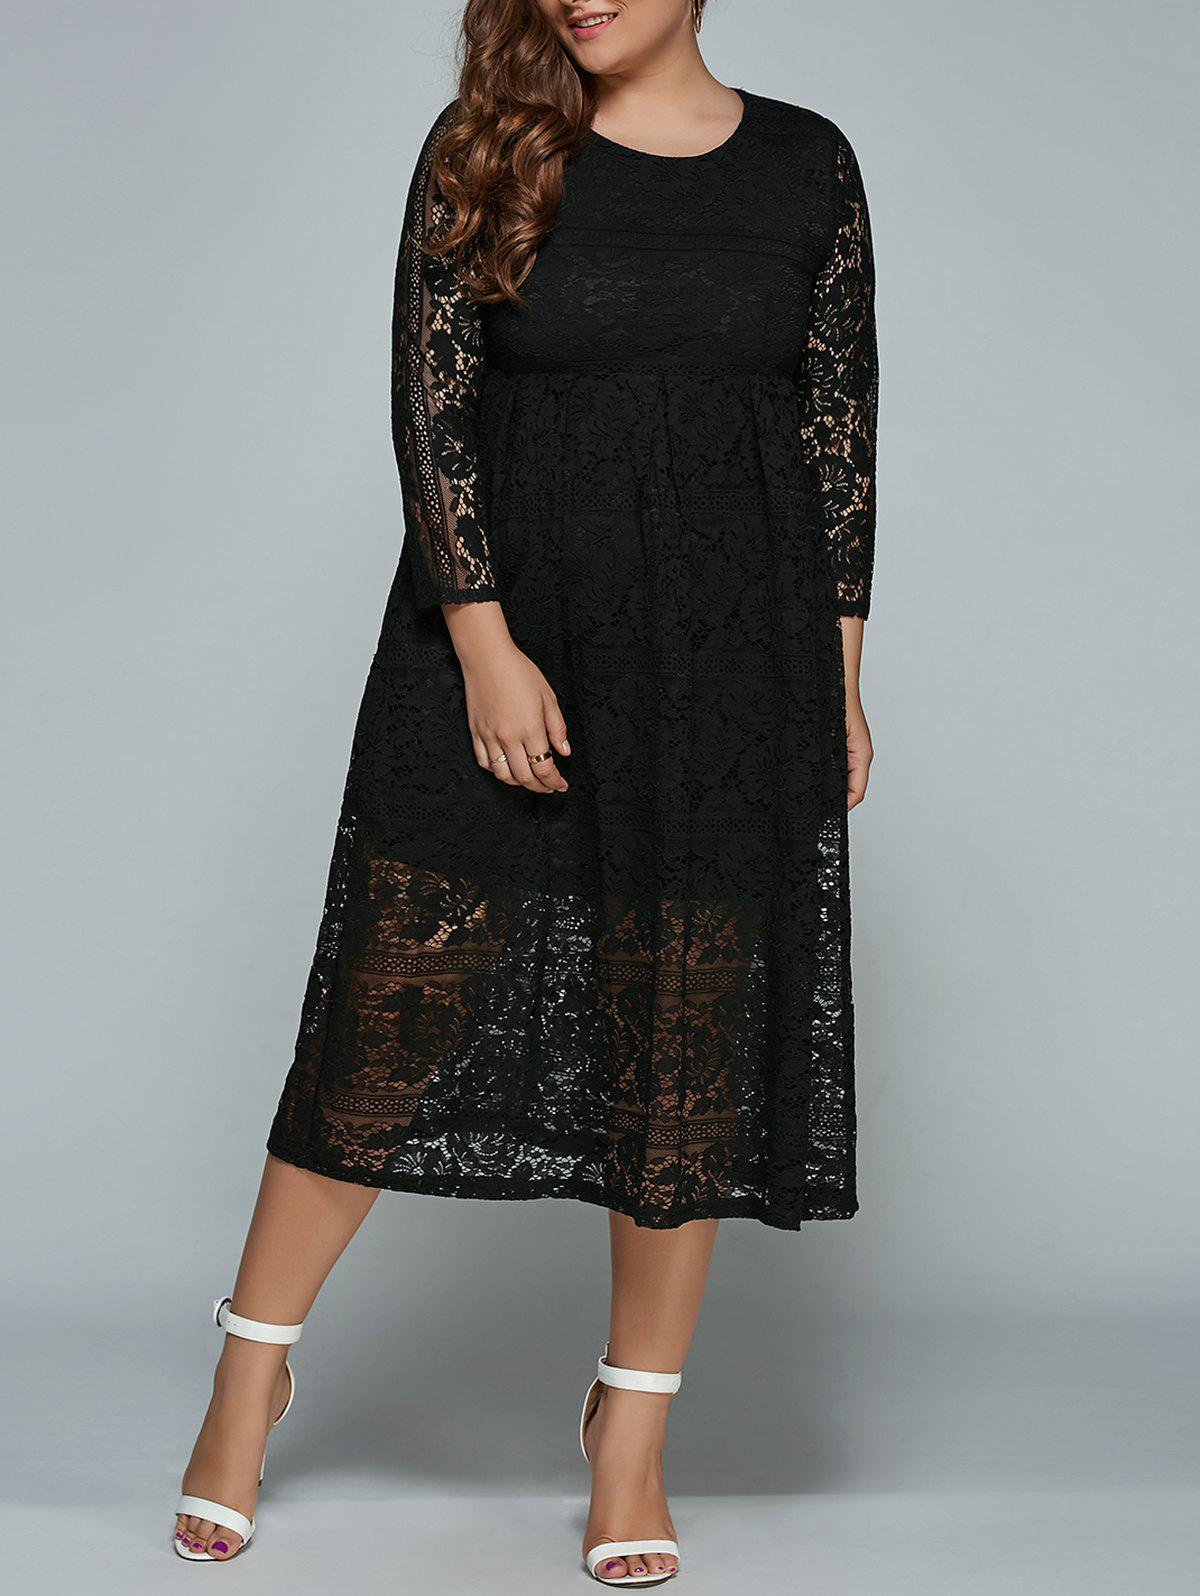 Midi Formal Plus Size Lace Dress - BLACK XL